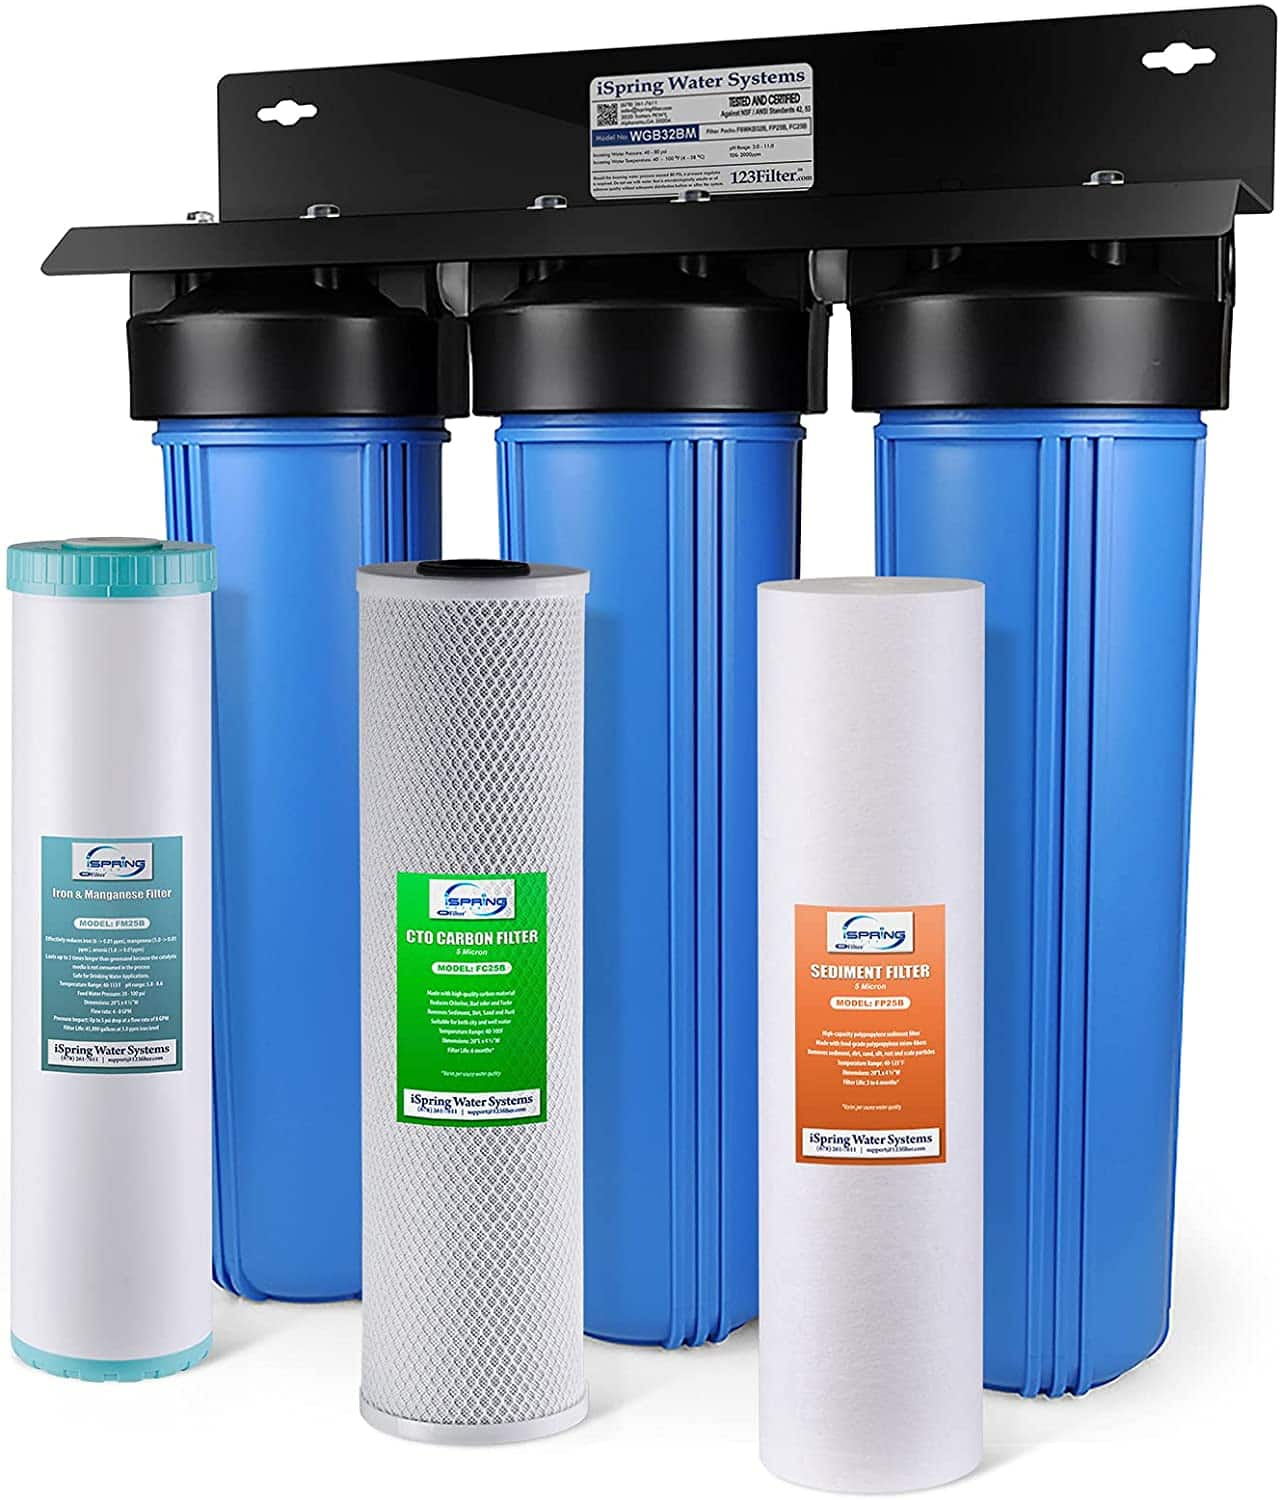 WGB32BM 3-Stage Whole House Water Filtration System w/ 20-Inch Sediment, Carbon Block, and Iron & Manganese Reducing Filter $363.02